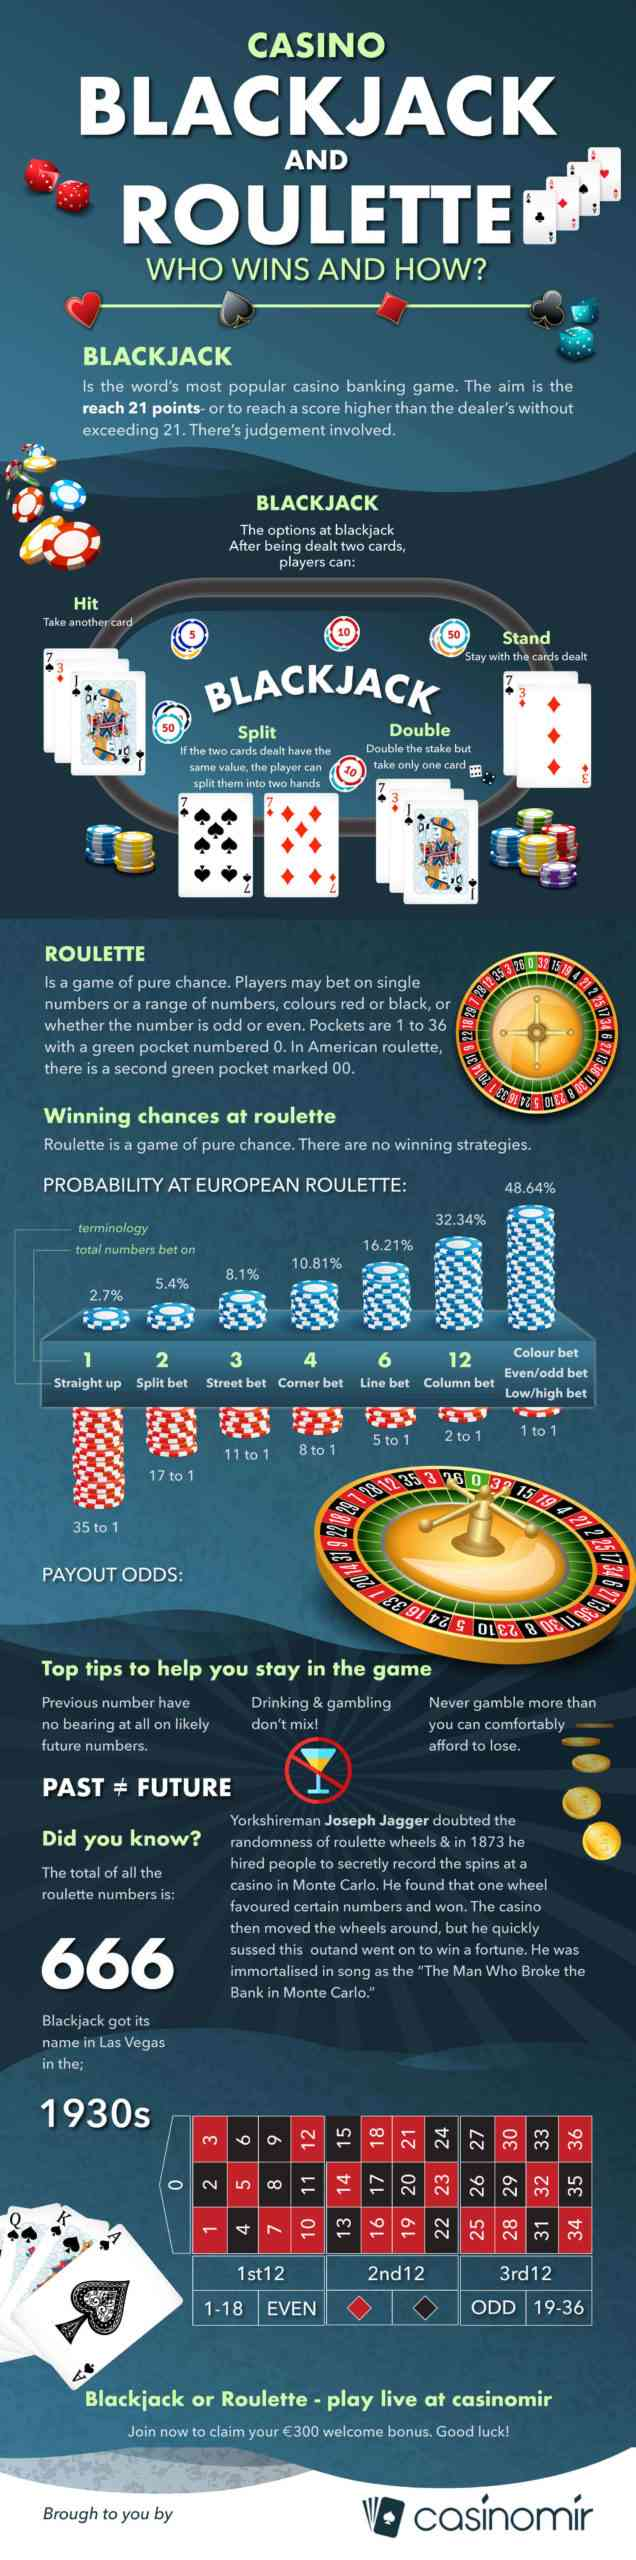 casino infographic design